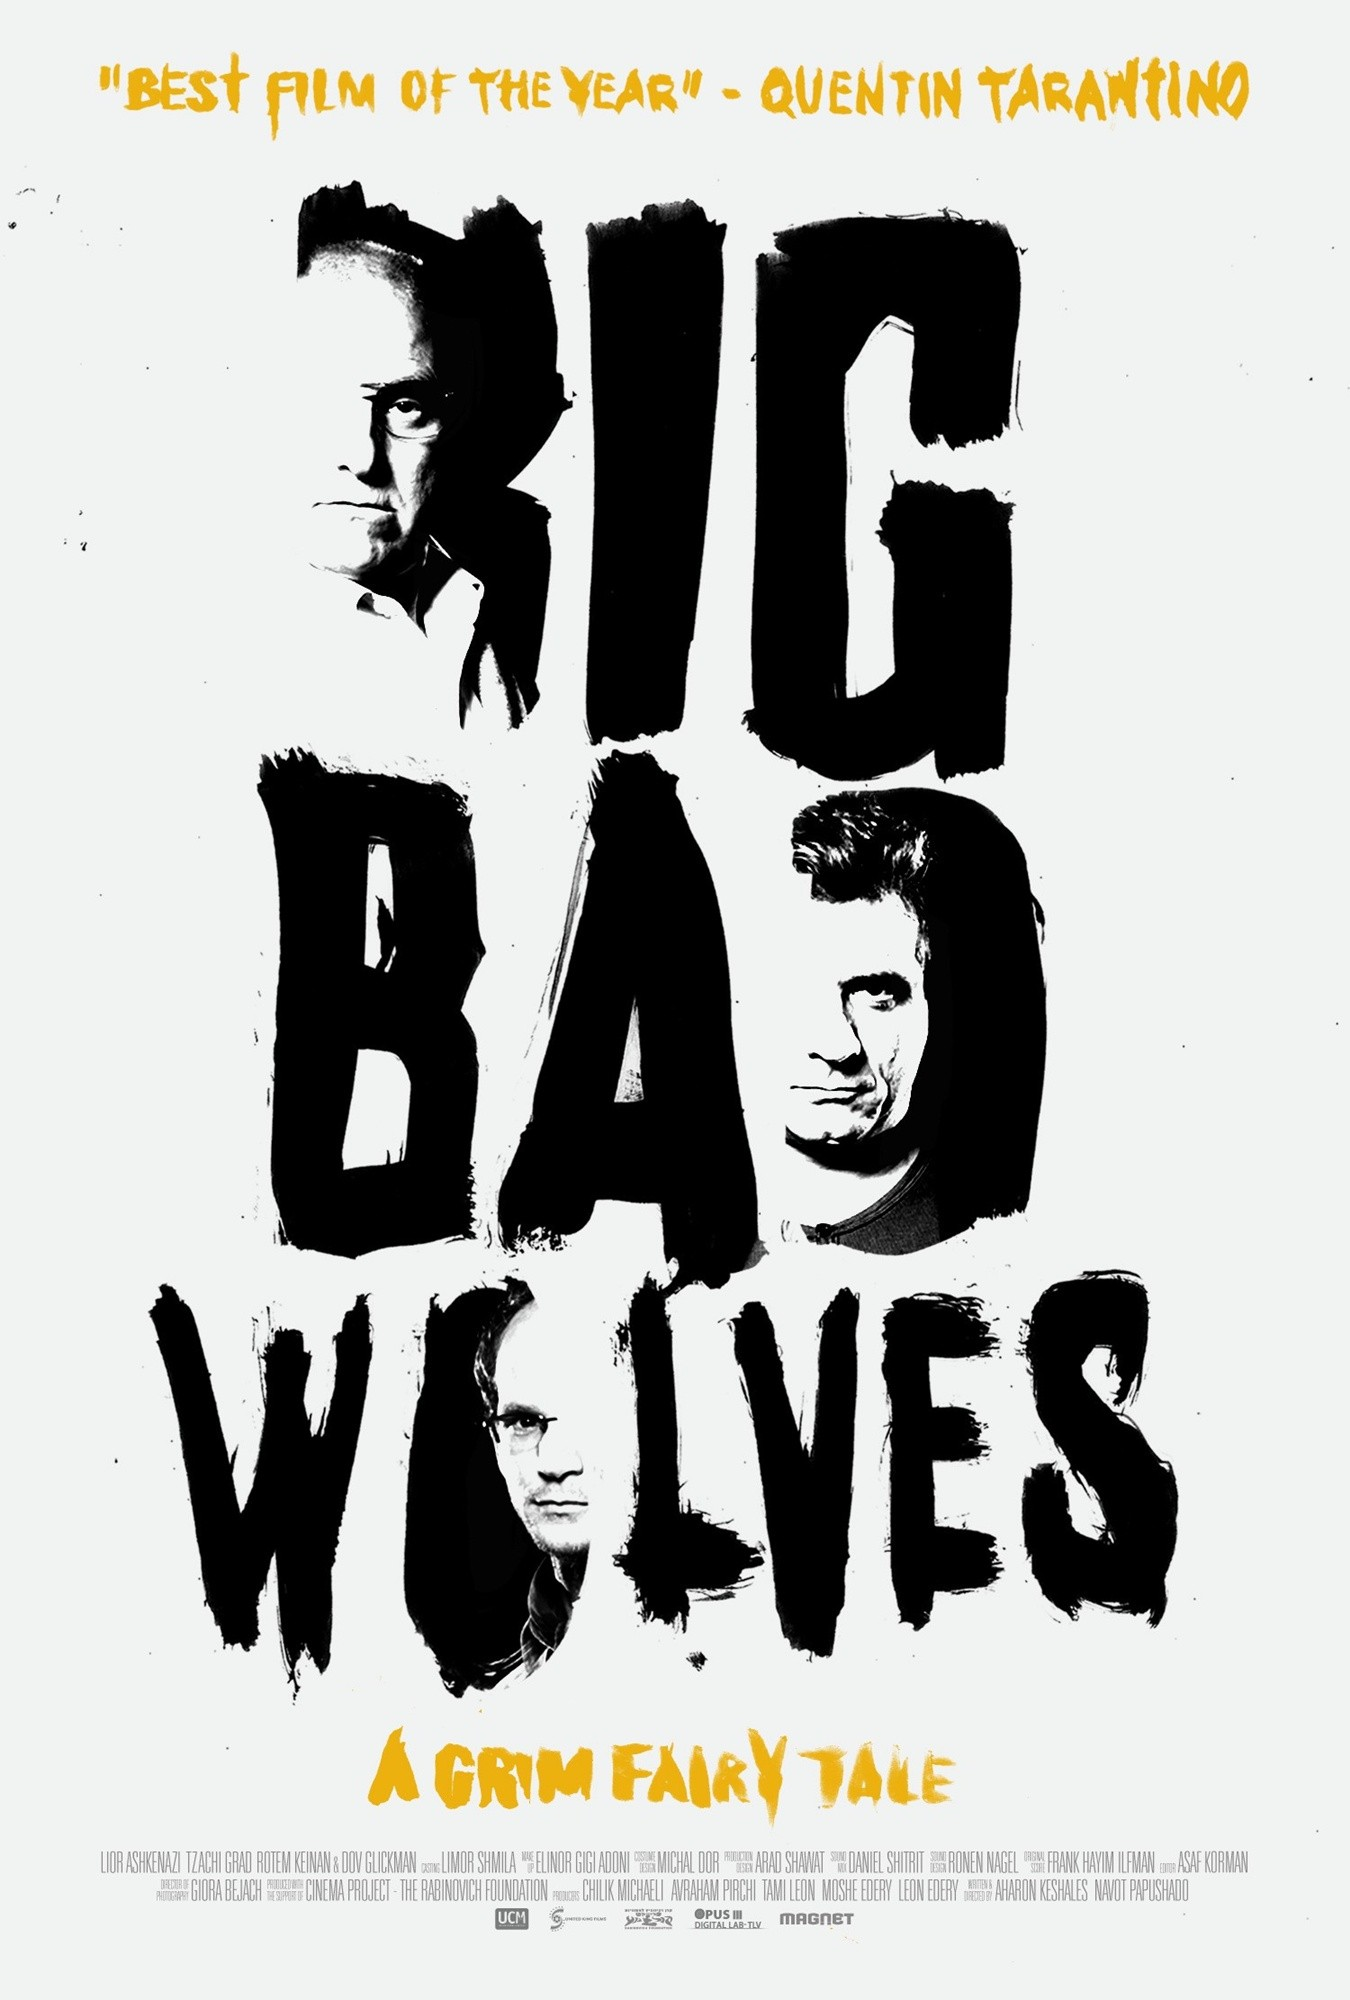 http://www.aceshowbiz.com/images/still/big-bad-wolves-poster05.jpg